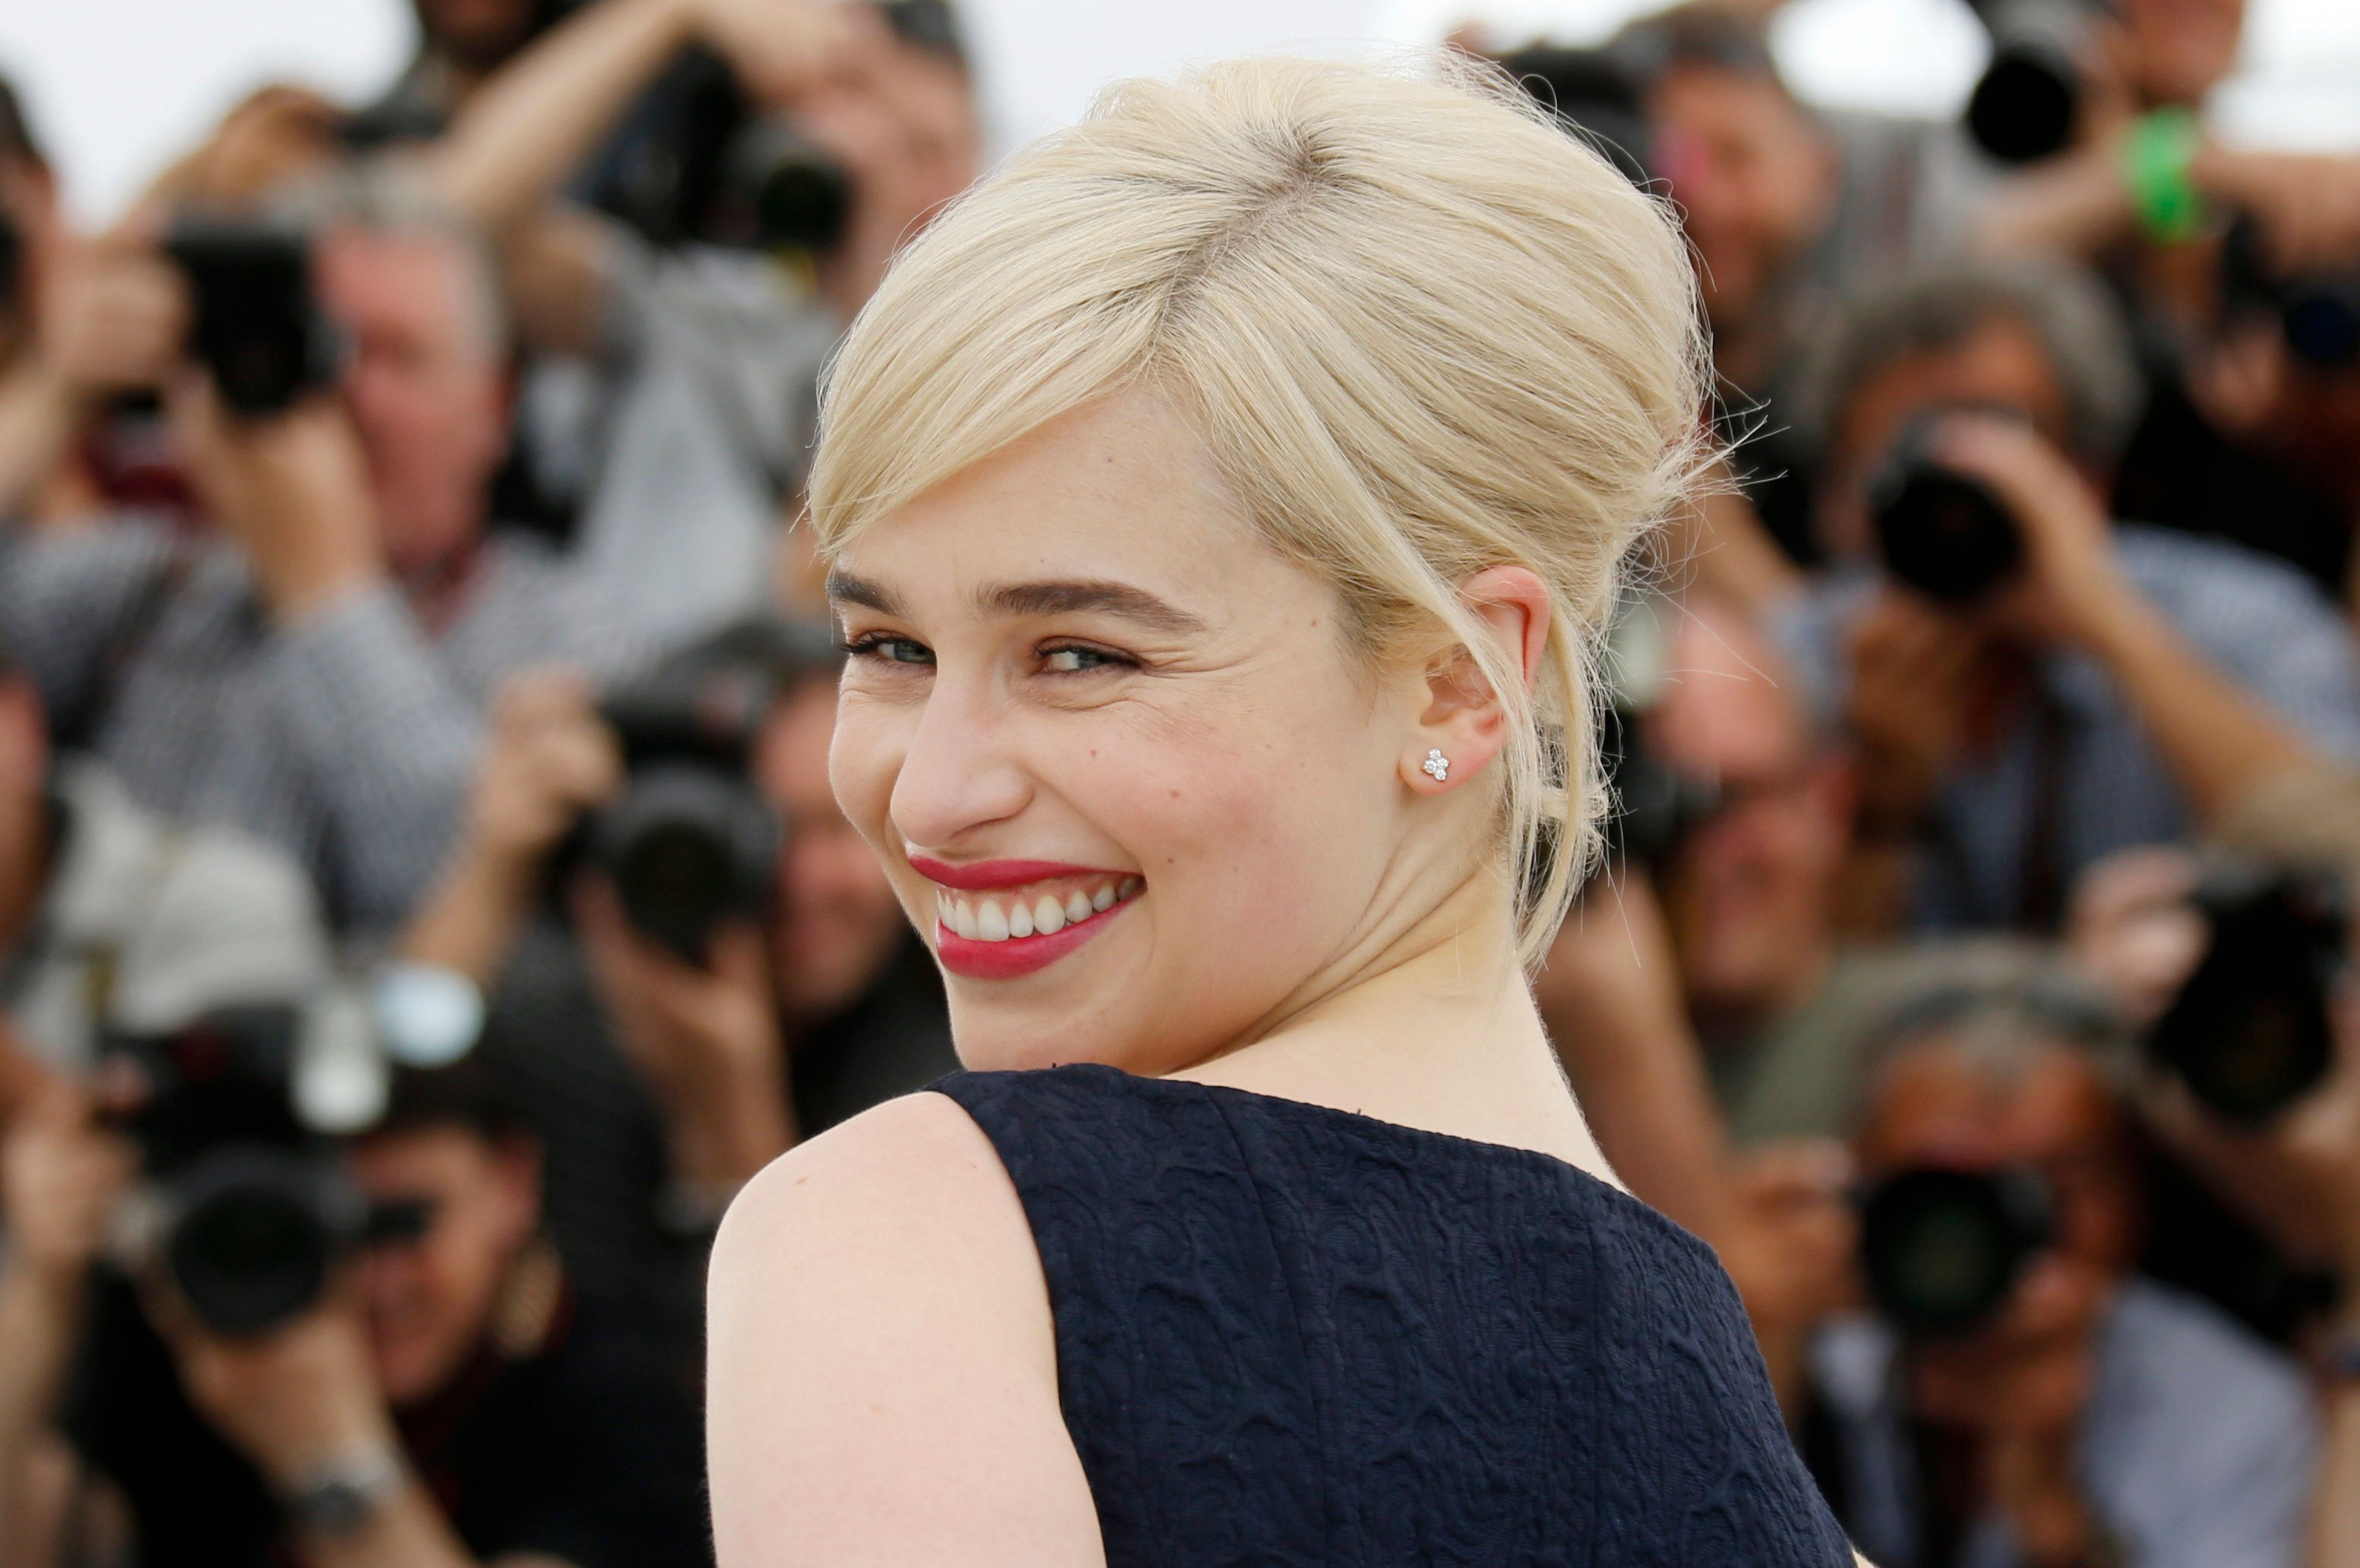 Emilia Clarke Just Got Her Shortest Haircut Ever